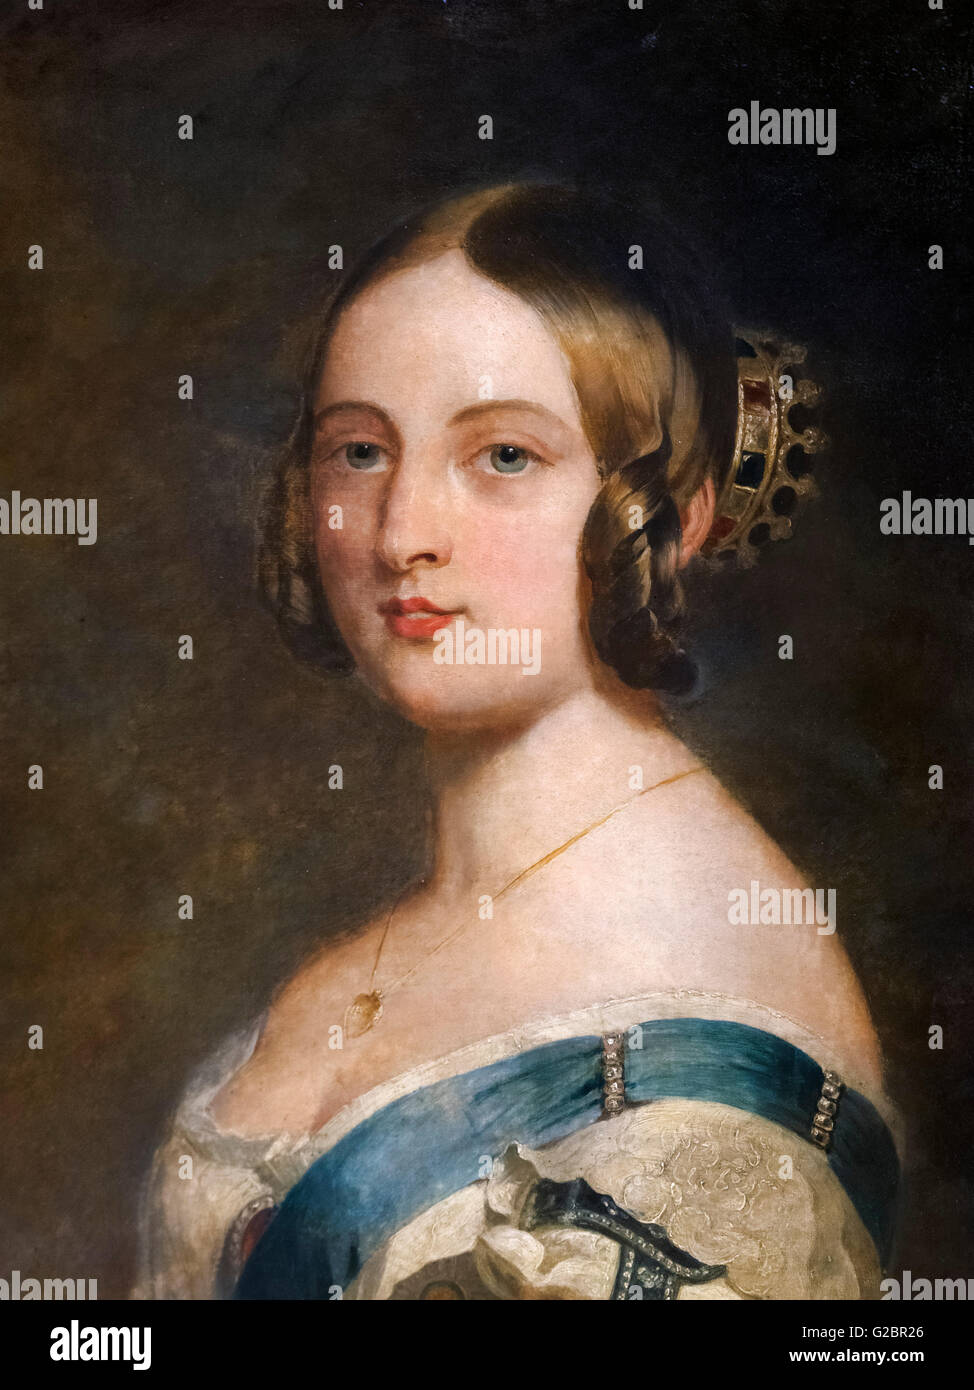 Queen Victoria of England as a young woman. Portrait by Franz Xaver Winterhalter, oil on canvas, c.1840. - Stock Image